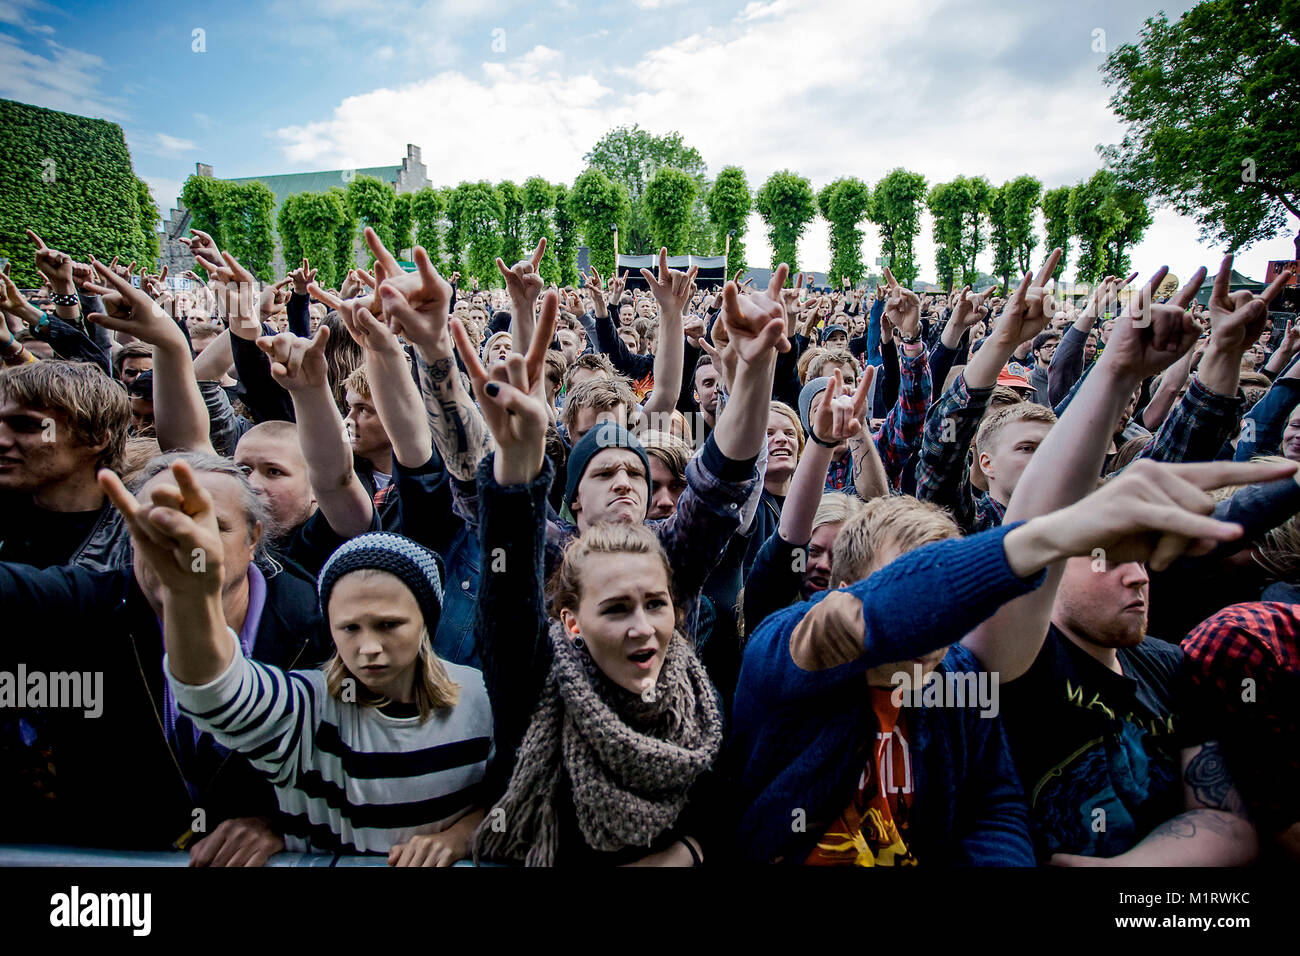 Heavy metal fans show The sign of the horns with their hands at a live concert with the French heavy metal band - Stock Image